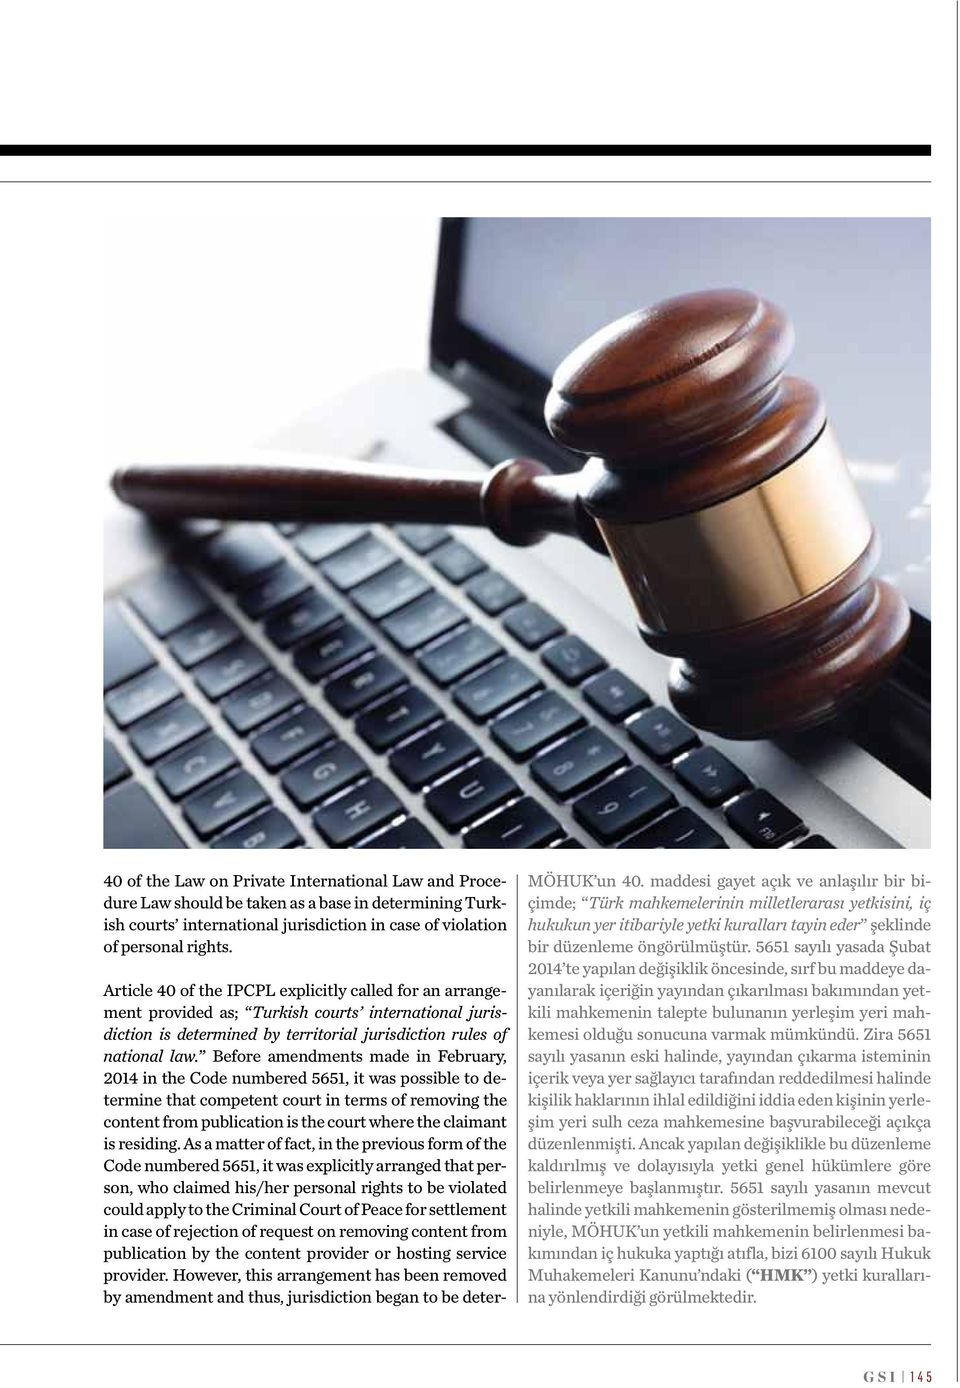 Before amendments made in February, 2014 in the Code numbered 5651, it was possible to determine that competent court in terms of removing the content from publication is the court where the claimant